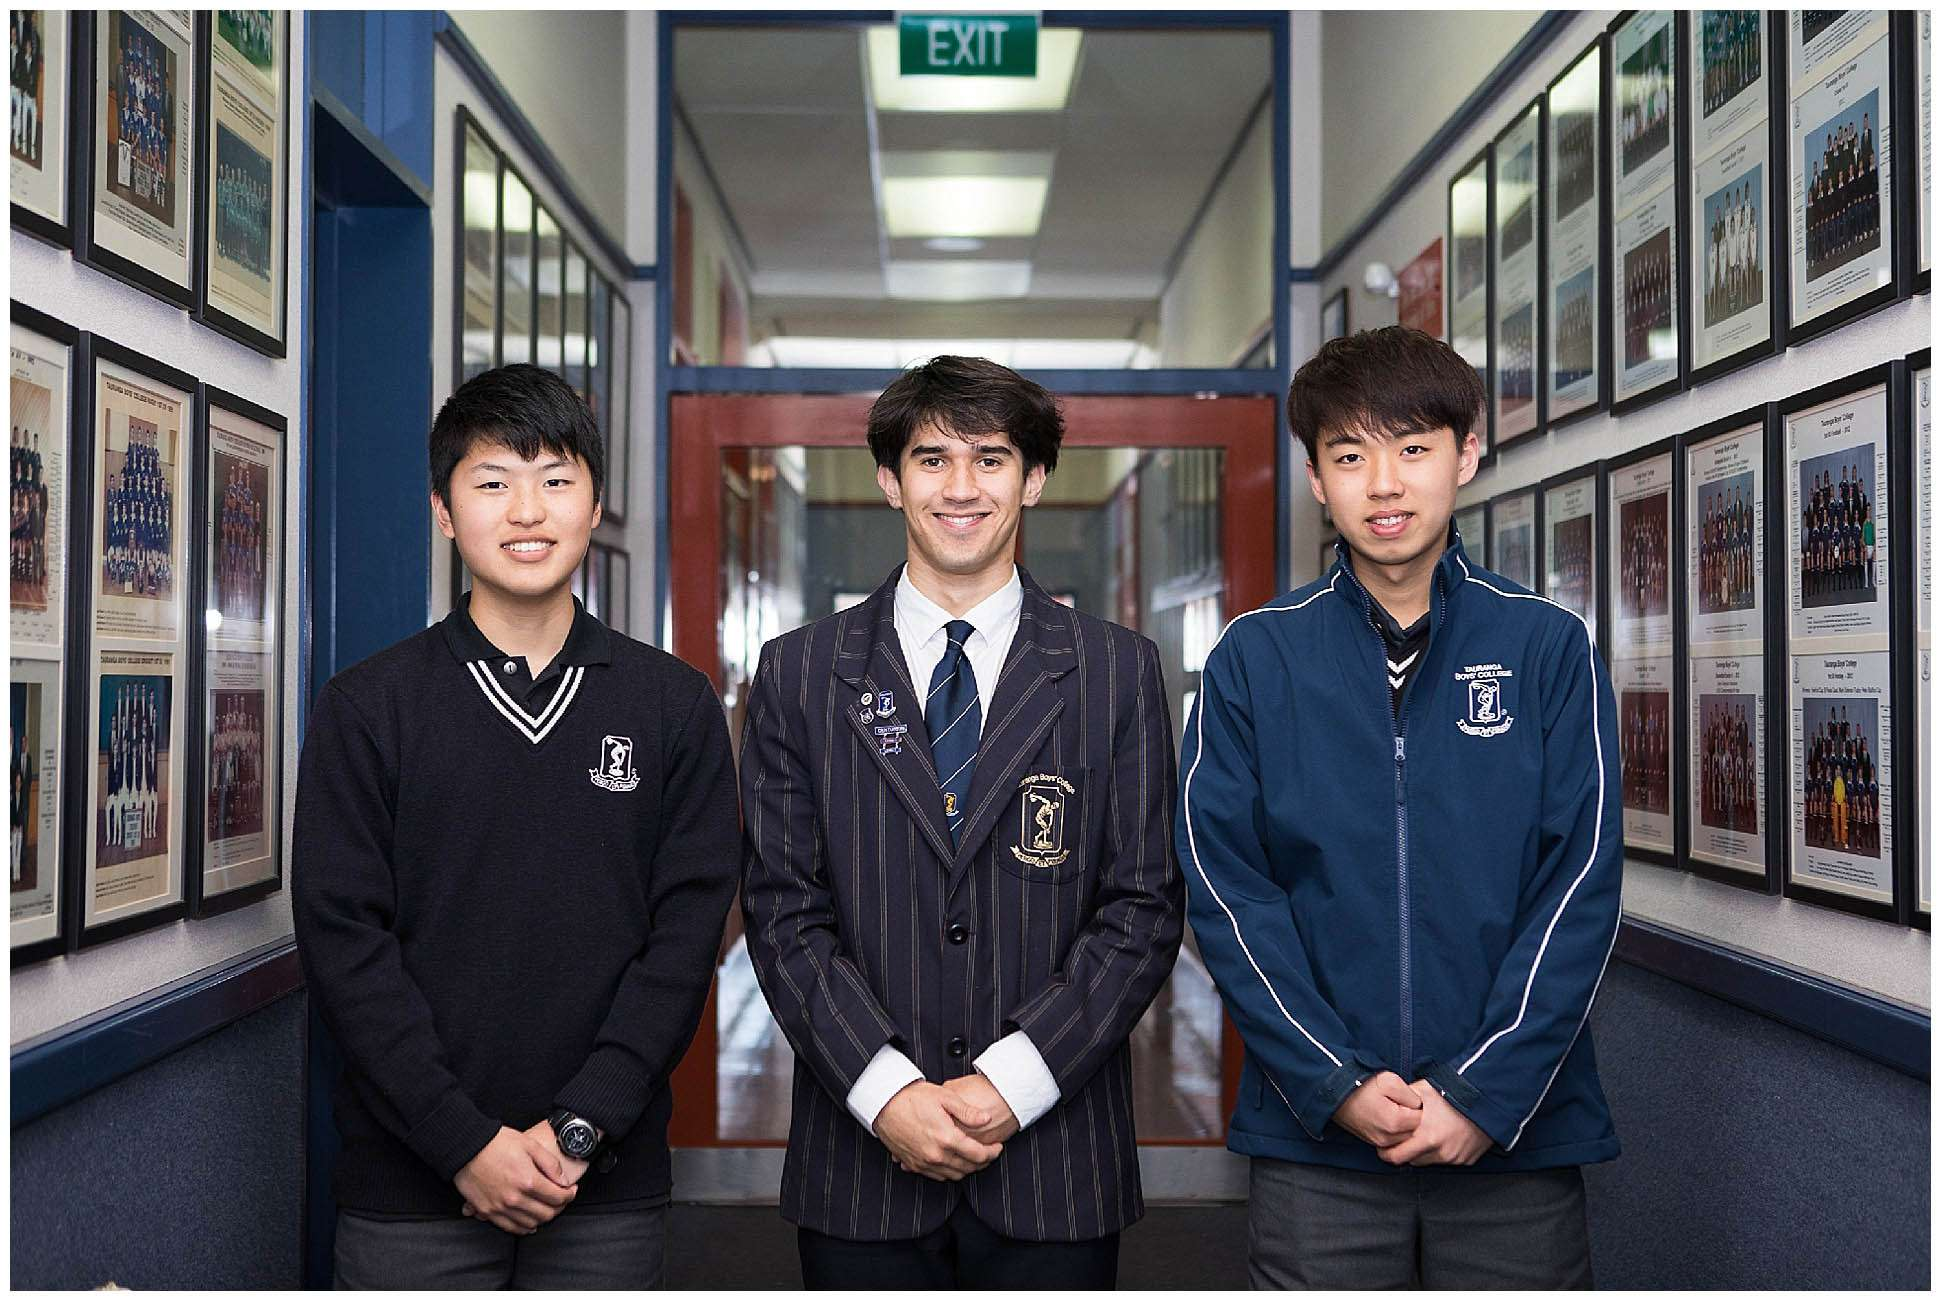 Enrolment - International  -  Tauranga Boys' College